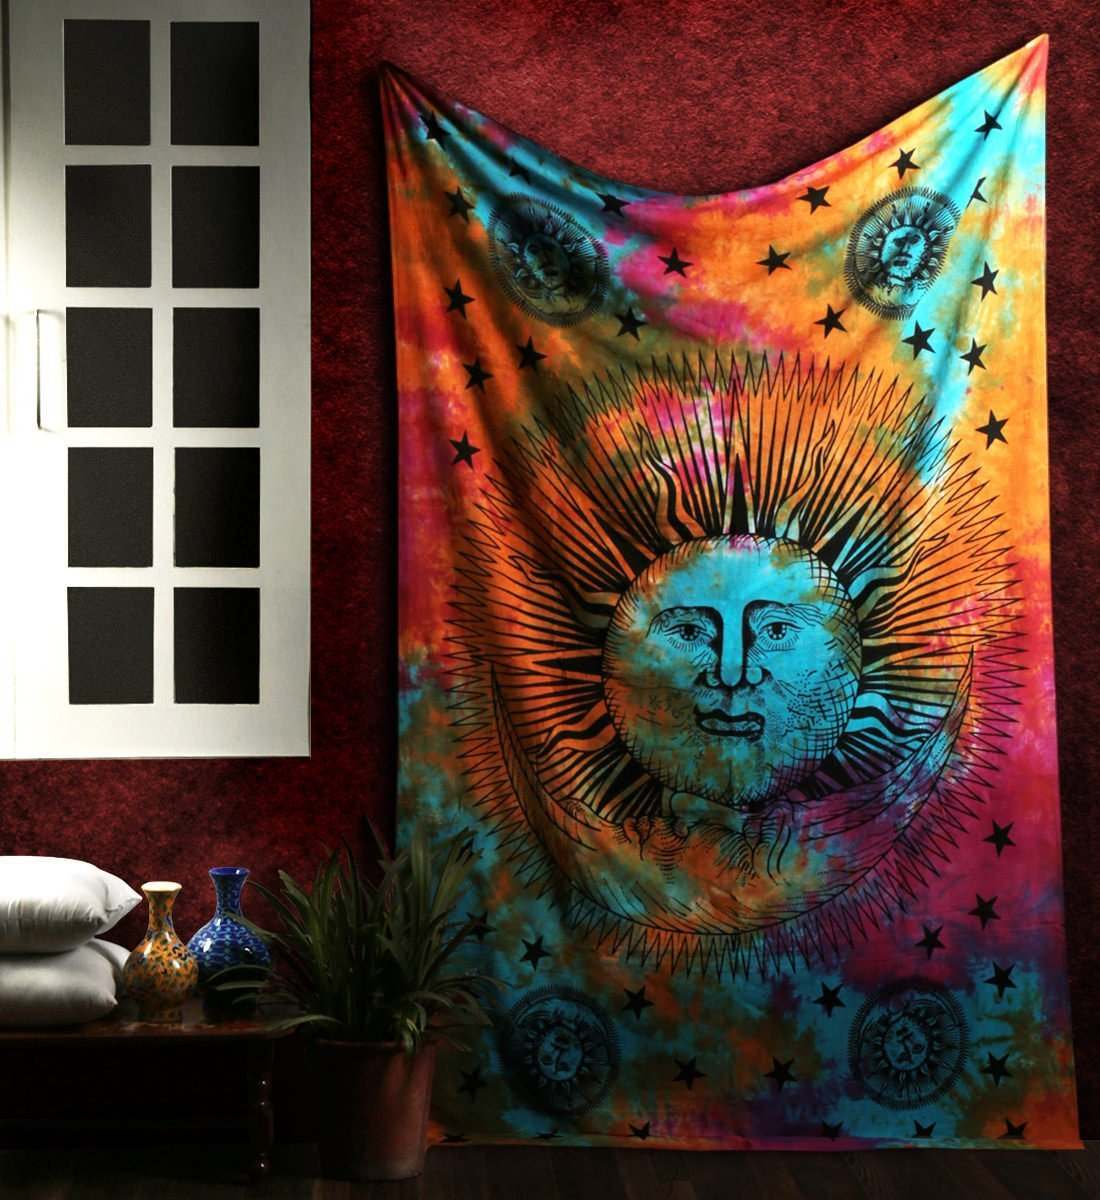 Enipate Psichedelico Celeste Telo Mare Sole Luna Stelle Tie Dye Hippie Hippy Sole-moon Celestial Wall Hanging Indiano Arazzo